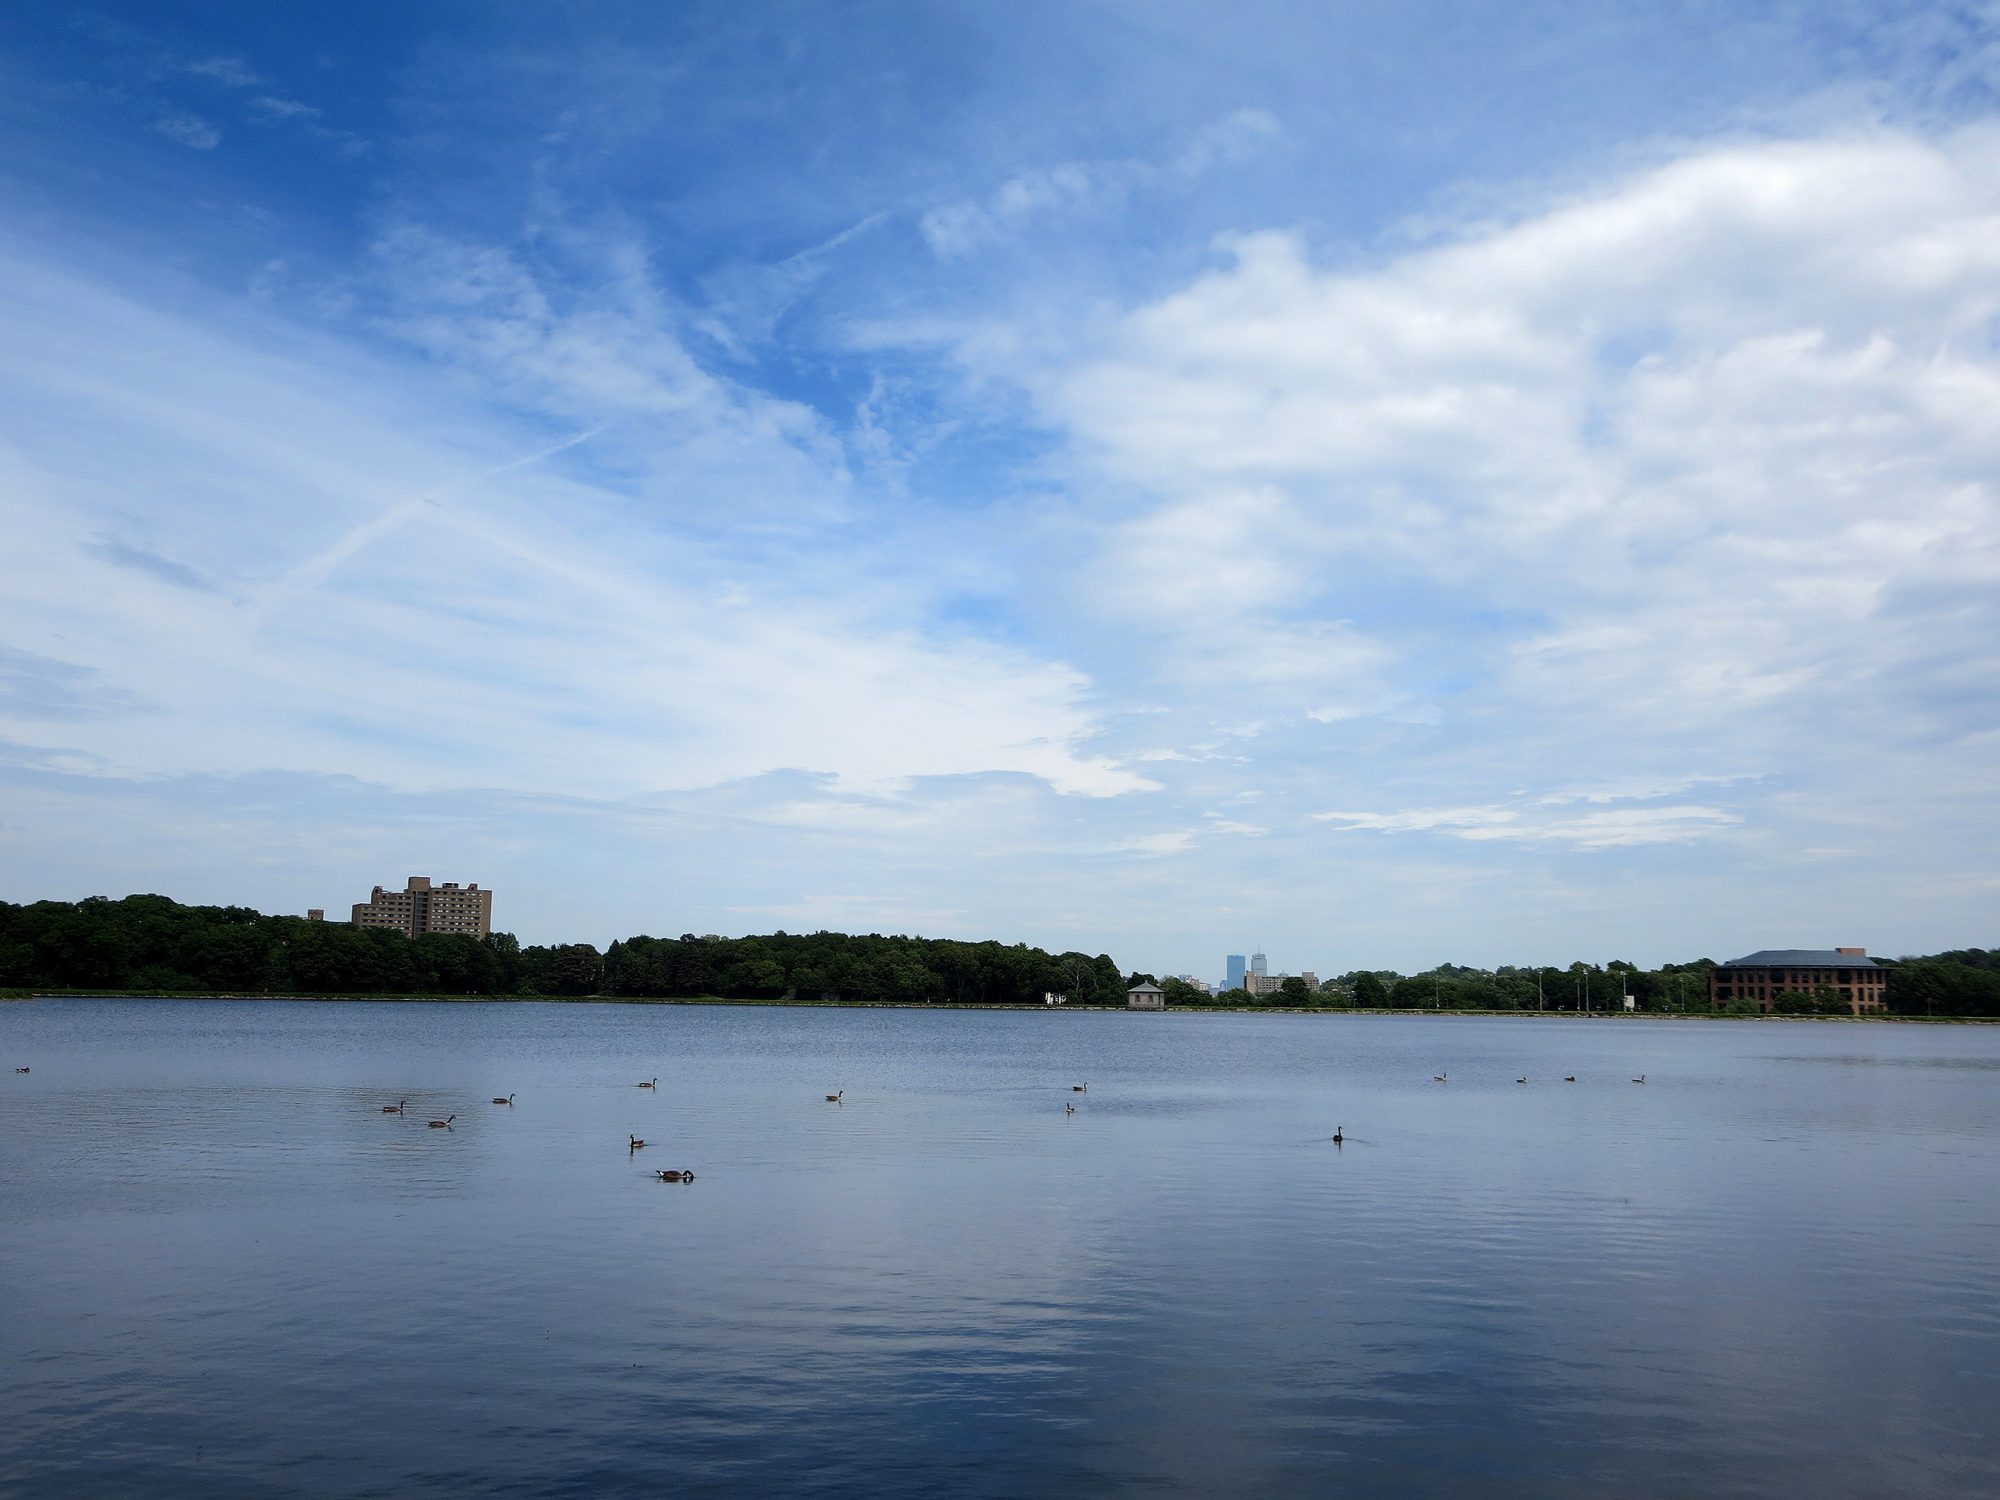 Chestnut Hill Reservoir